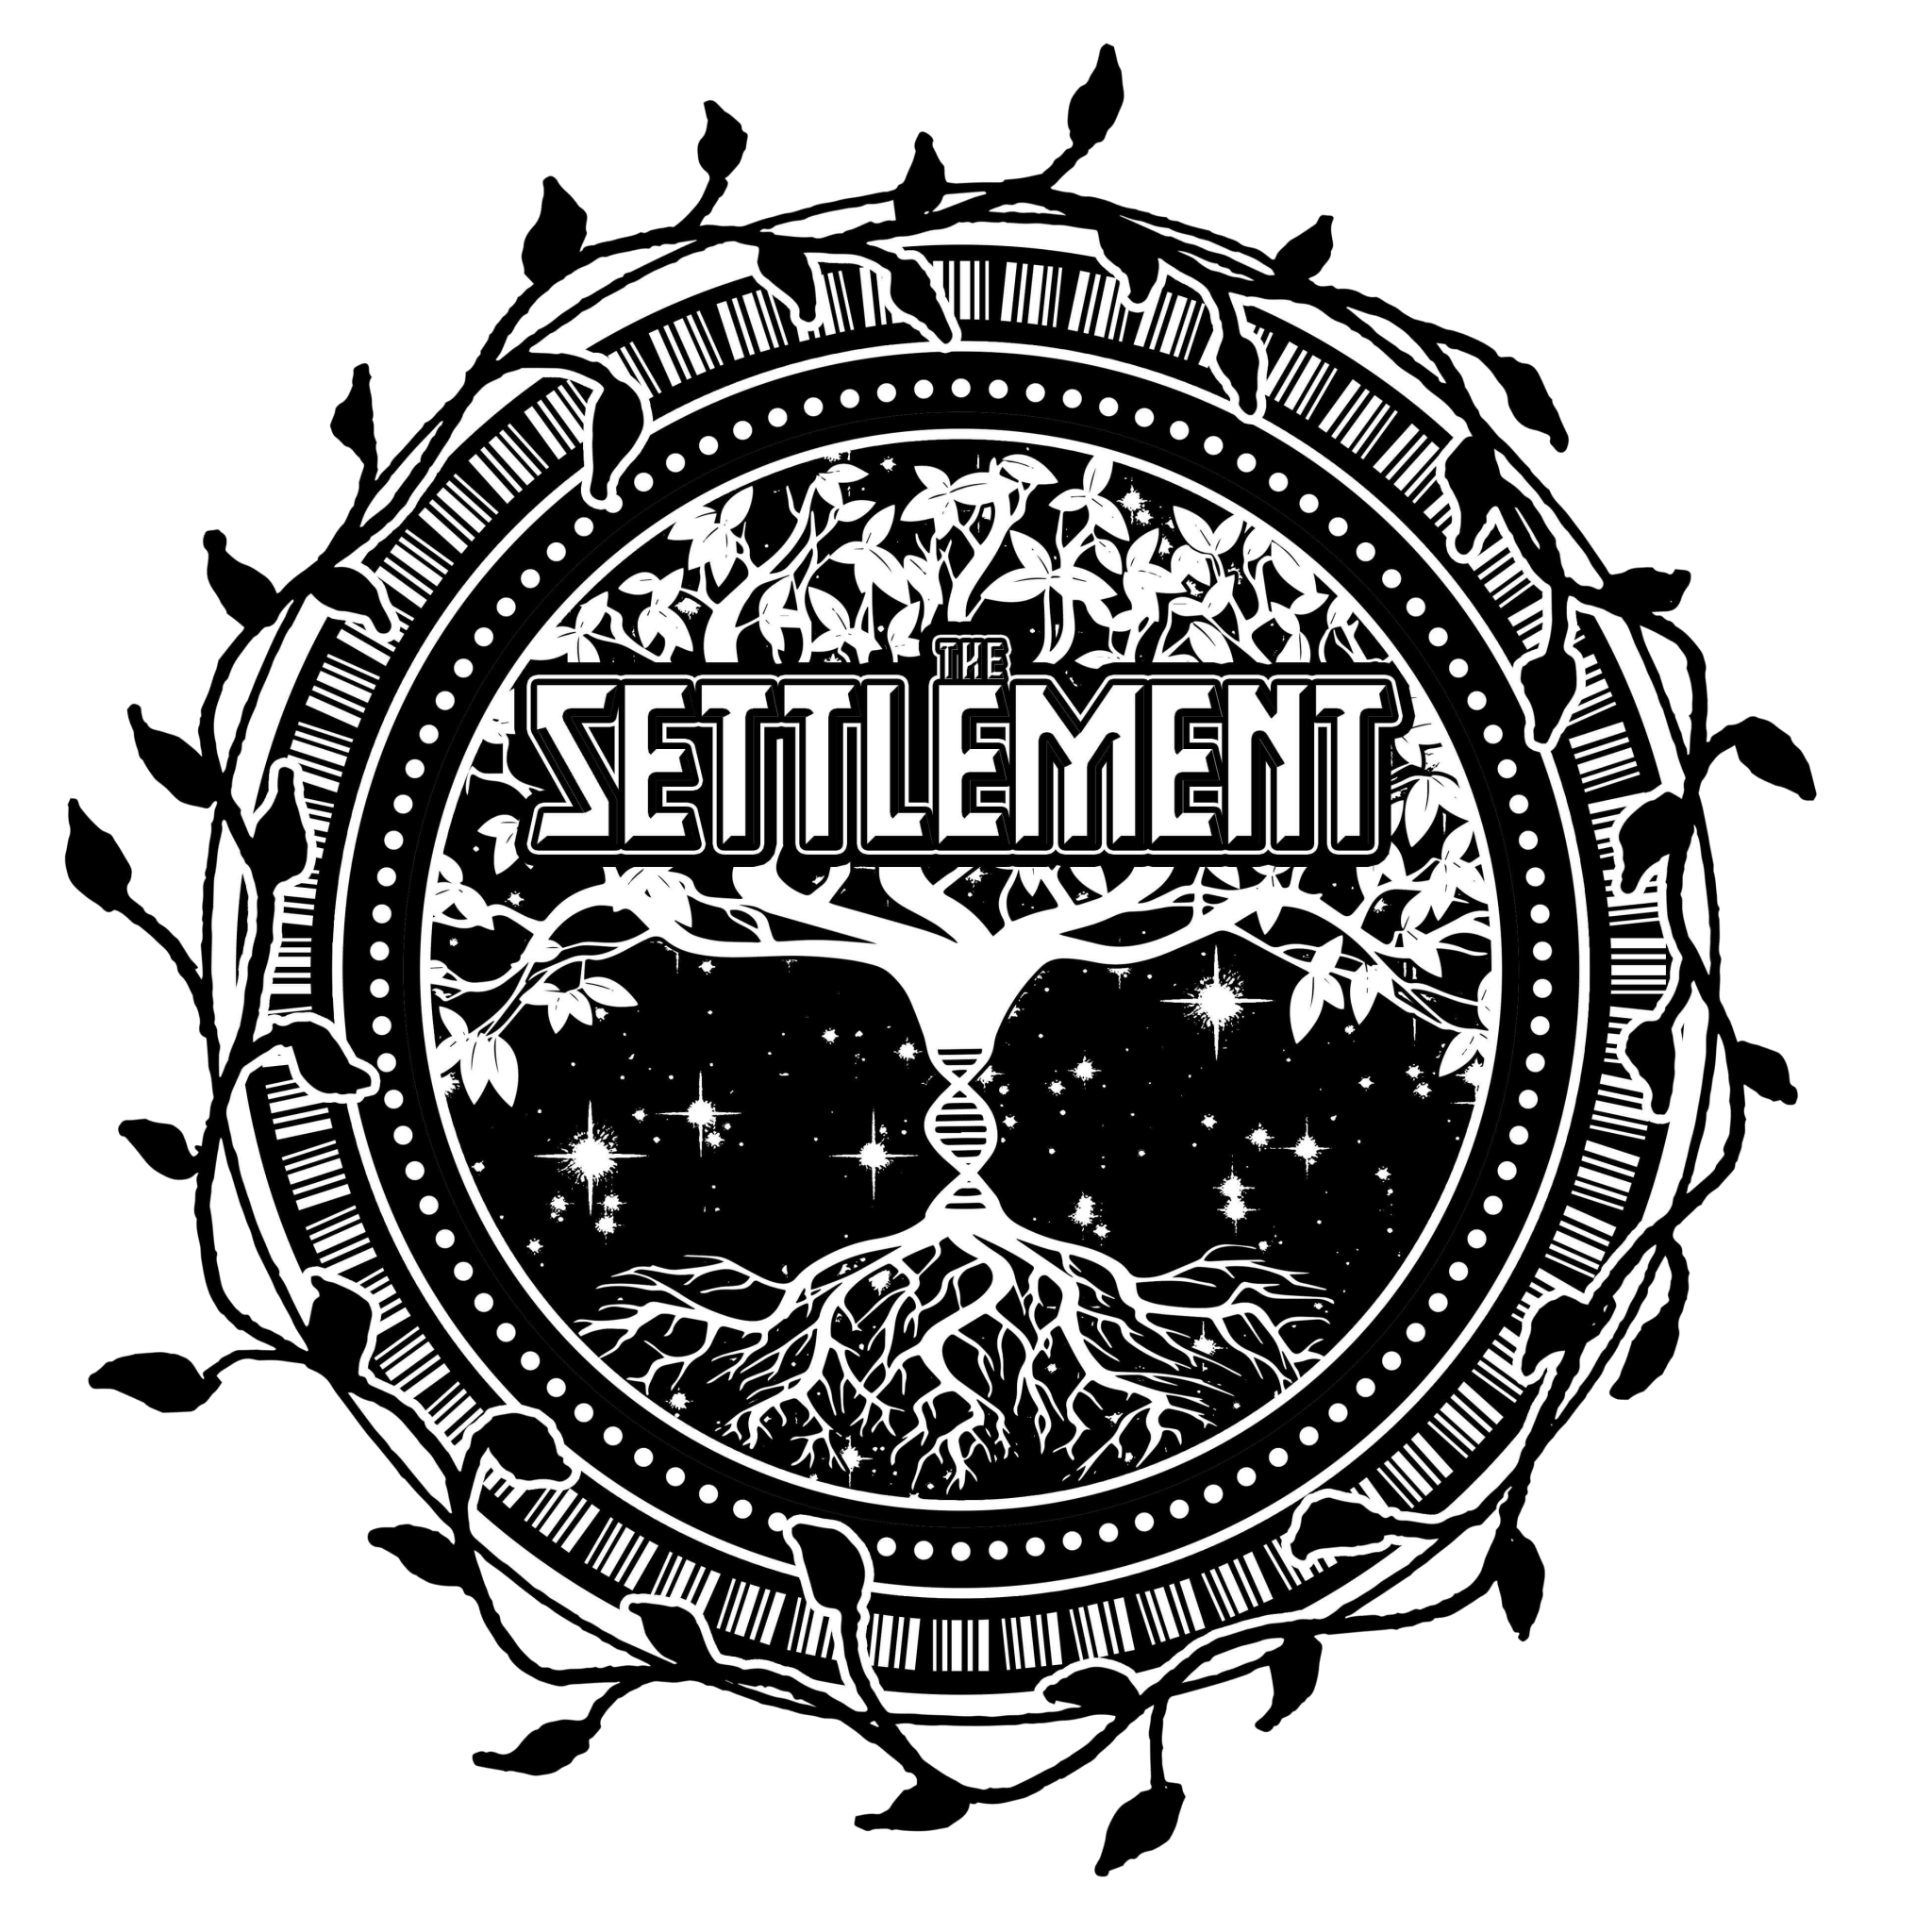 The Settlement Band